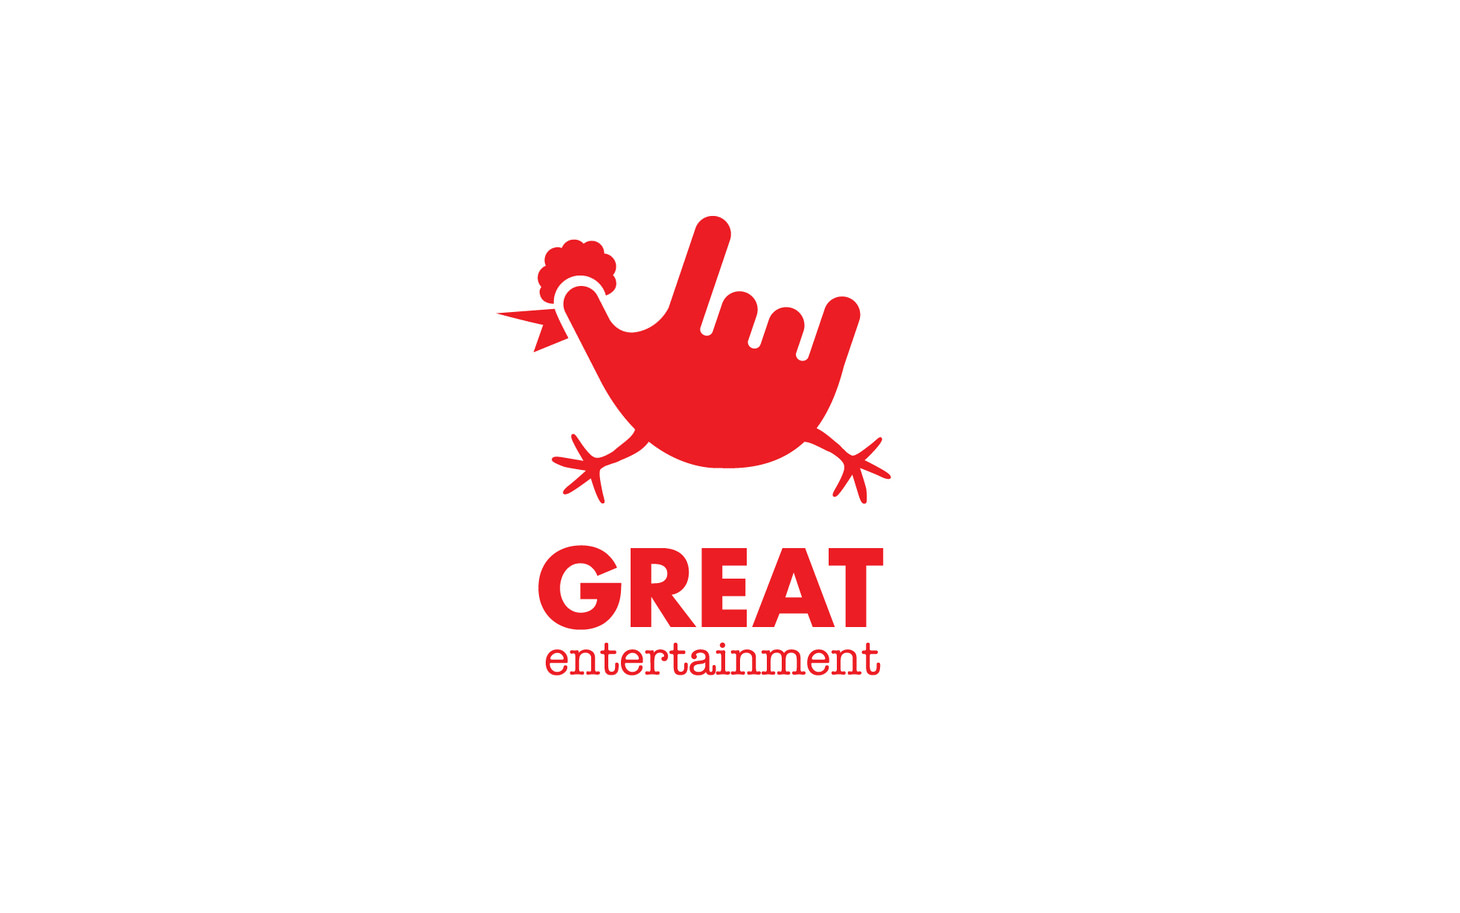 Great_Logo_01.jpg